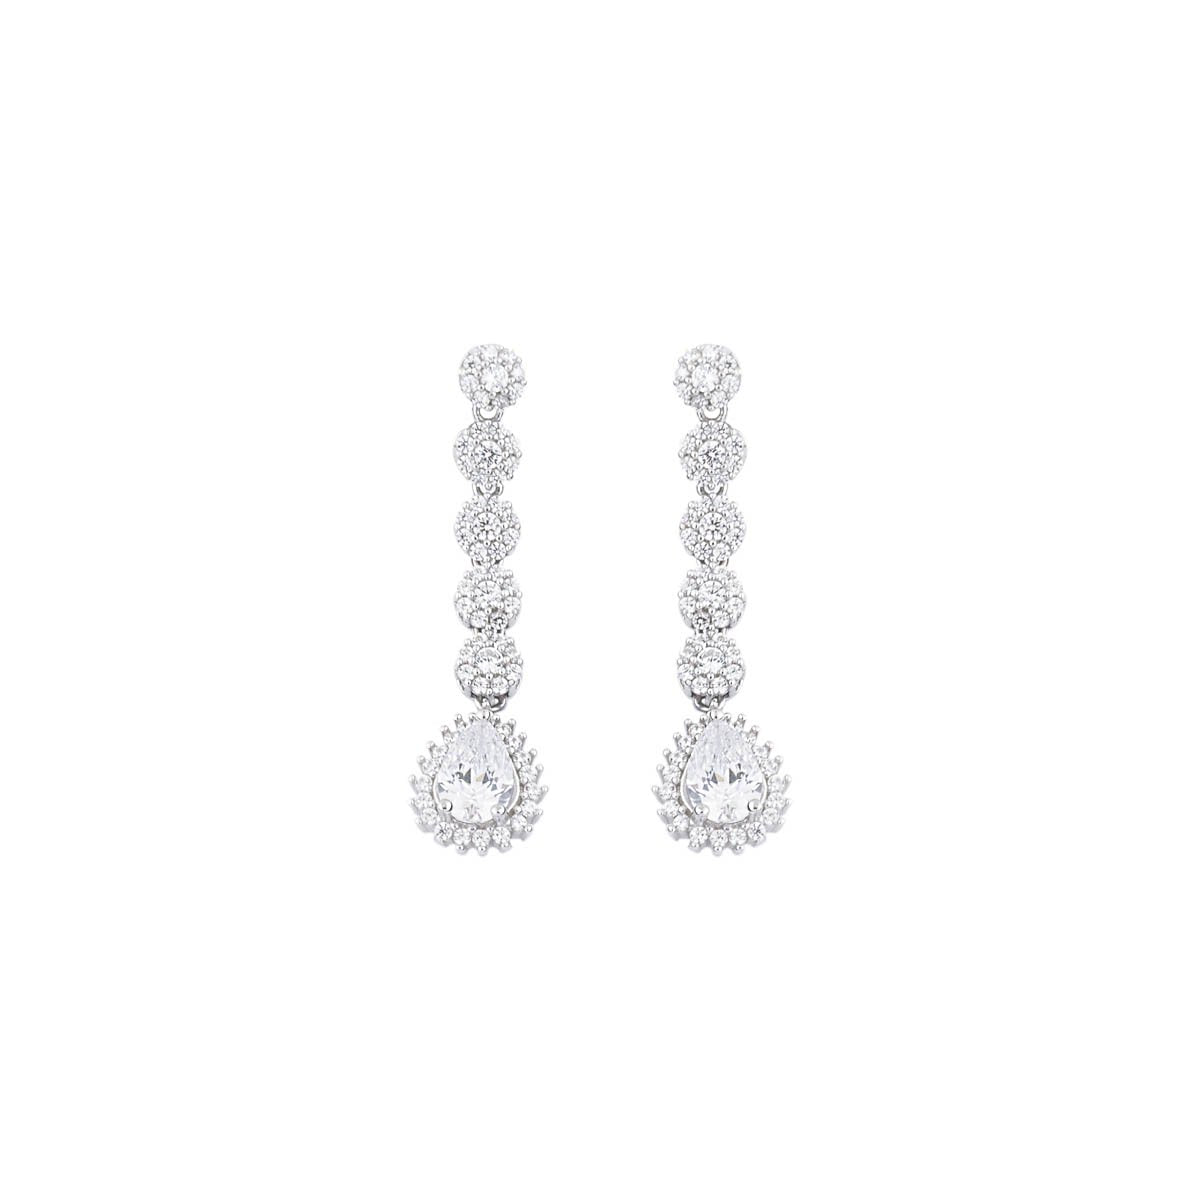 Earring E1385 - 925 Sterling Silver